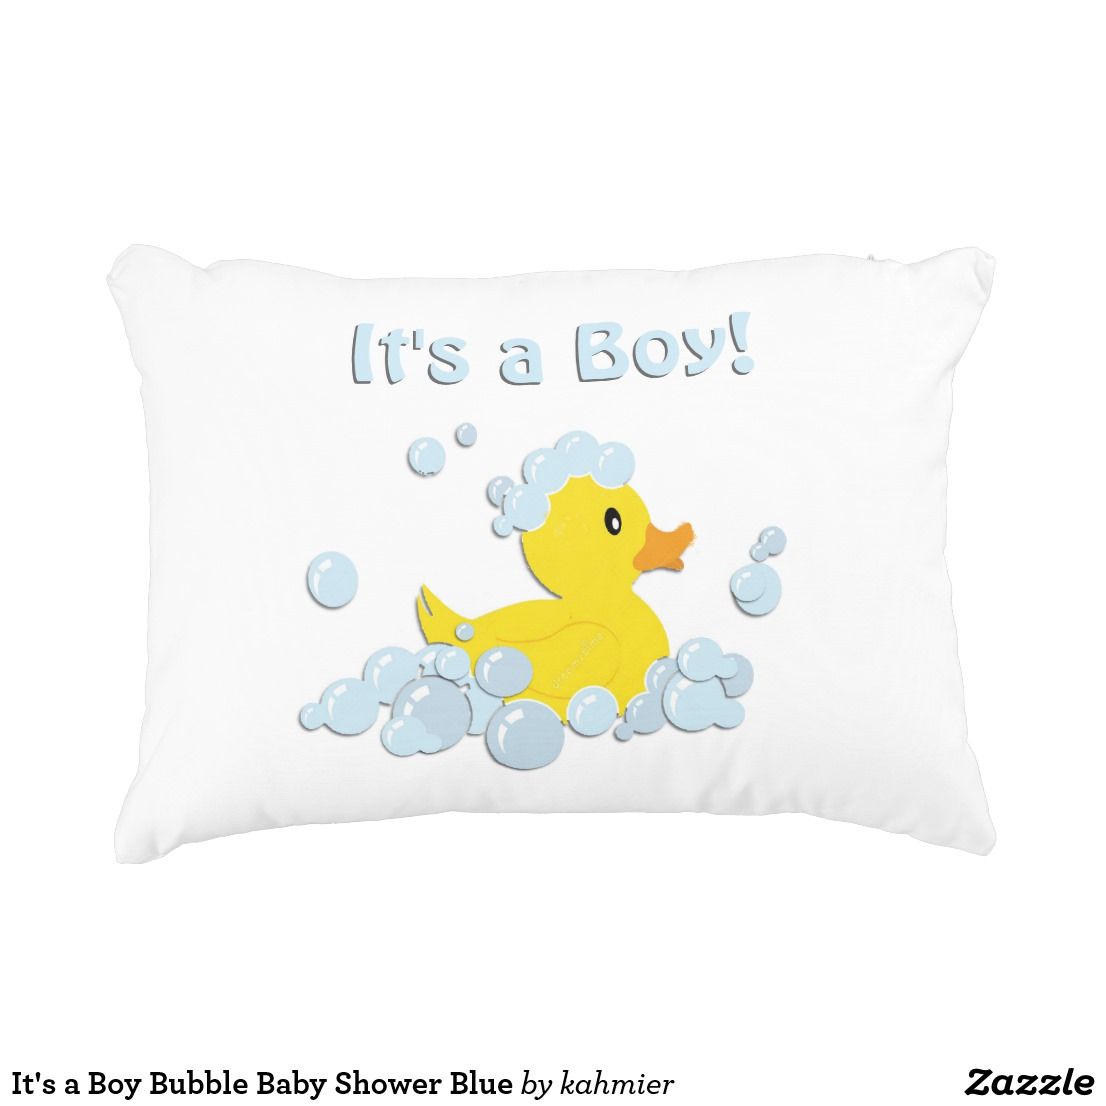 It's a Boy Bubble Baby Shower Blue Decorative Pillow